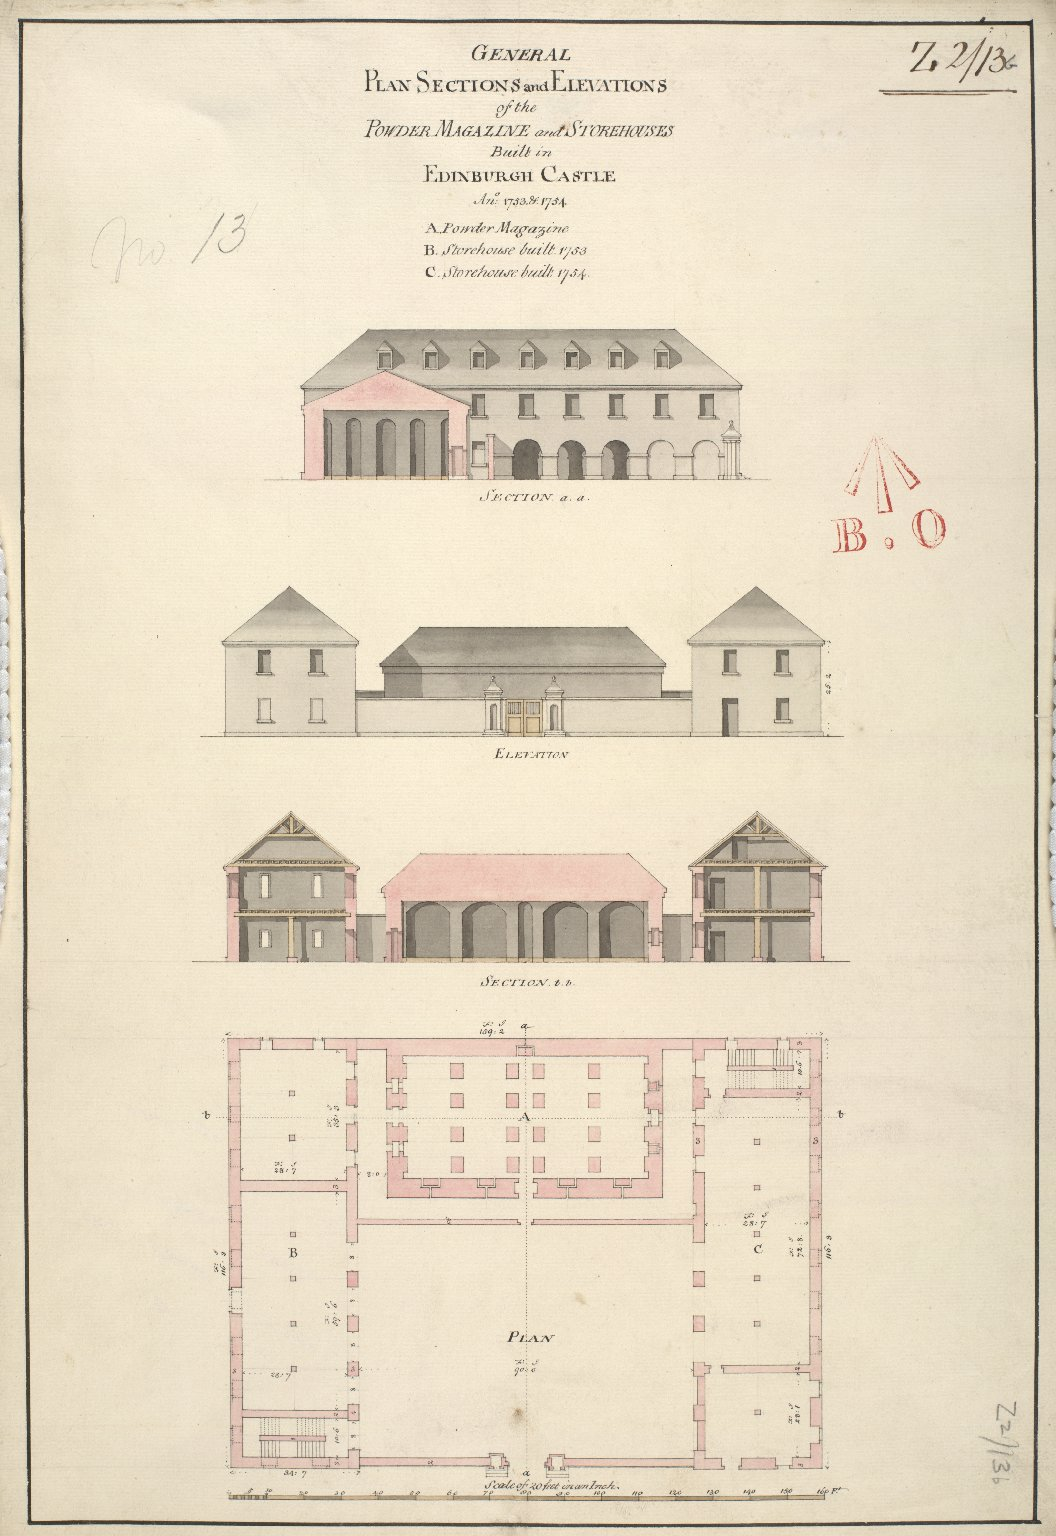 General plan sections and elevations of the powder magazine and storehouses built in Edinburgh Castle Ano: 1753 & 1754 [1 of 1]